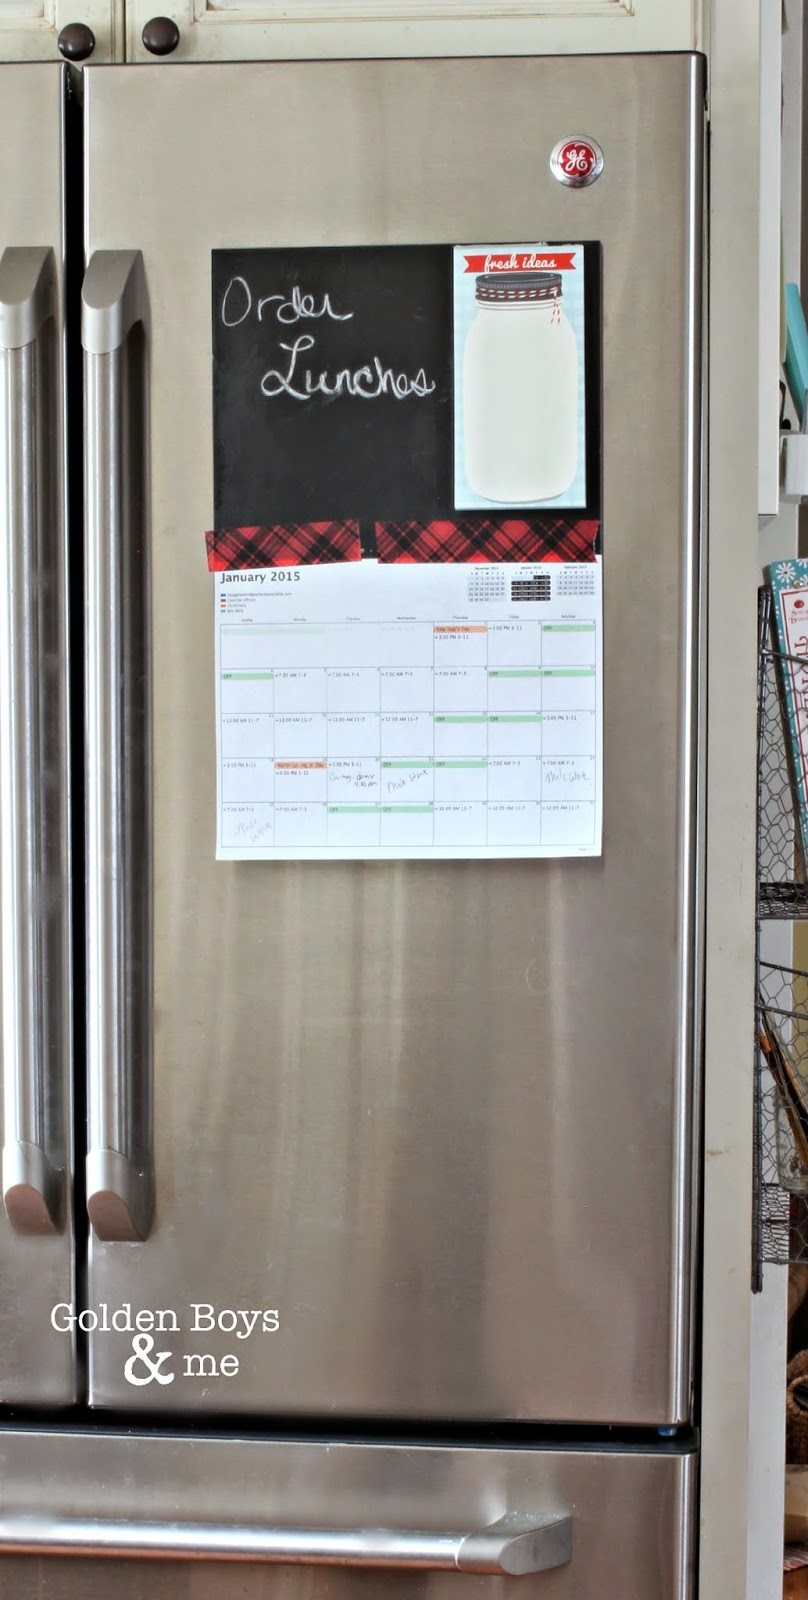 Refrigerator with chalkboard attached using Command Adhesive-www.goldenboysandme.com